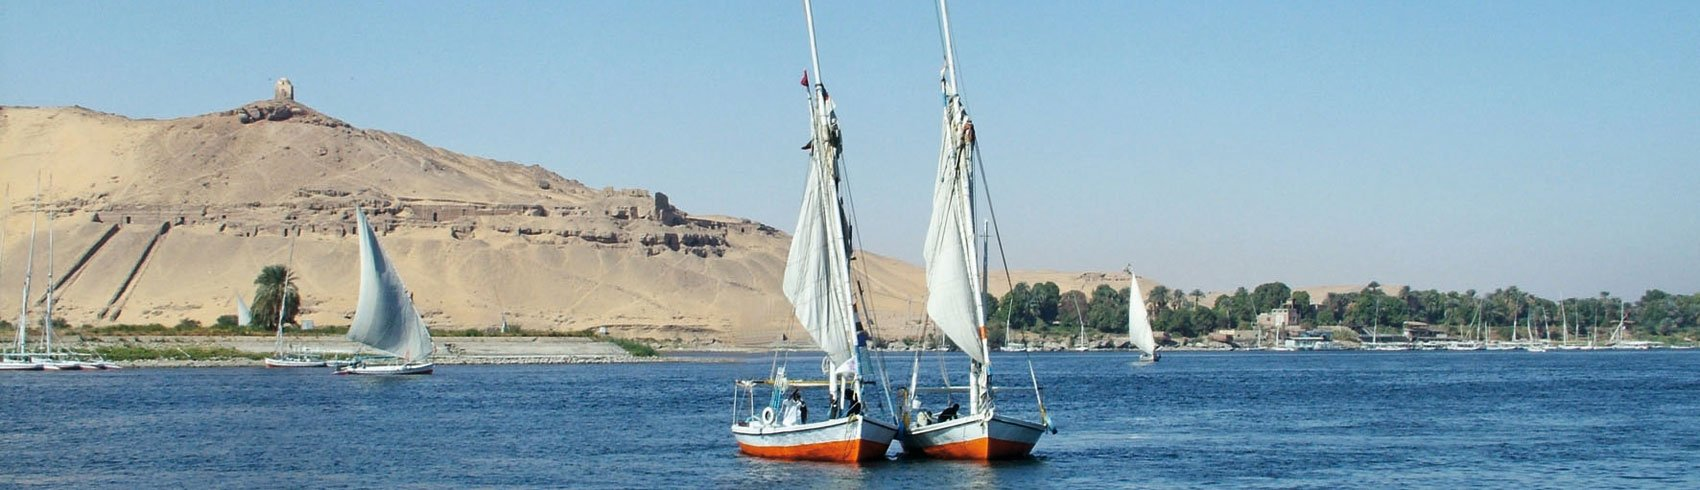 Mövenpick MS Royal Lotus Nile Cruise | Egypt Nile Cruise Holidays 2020